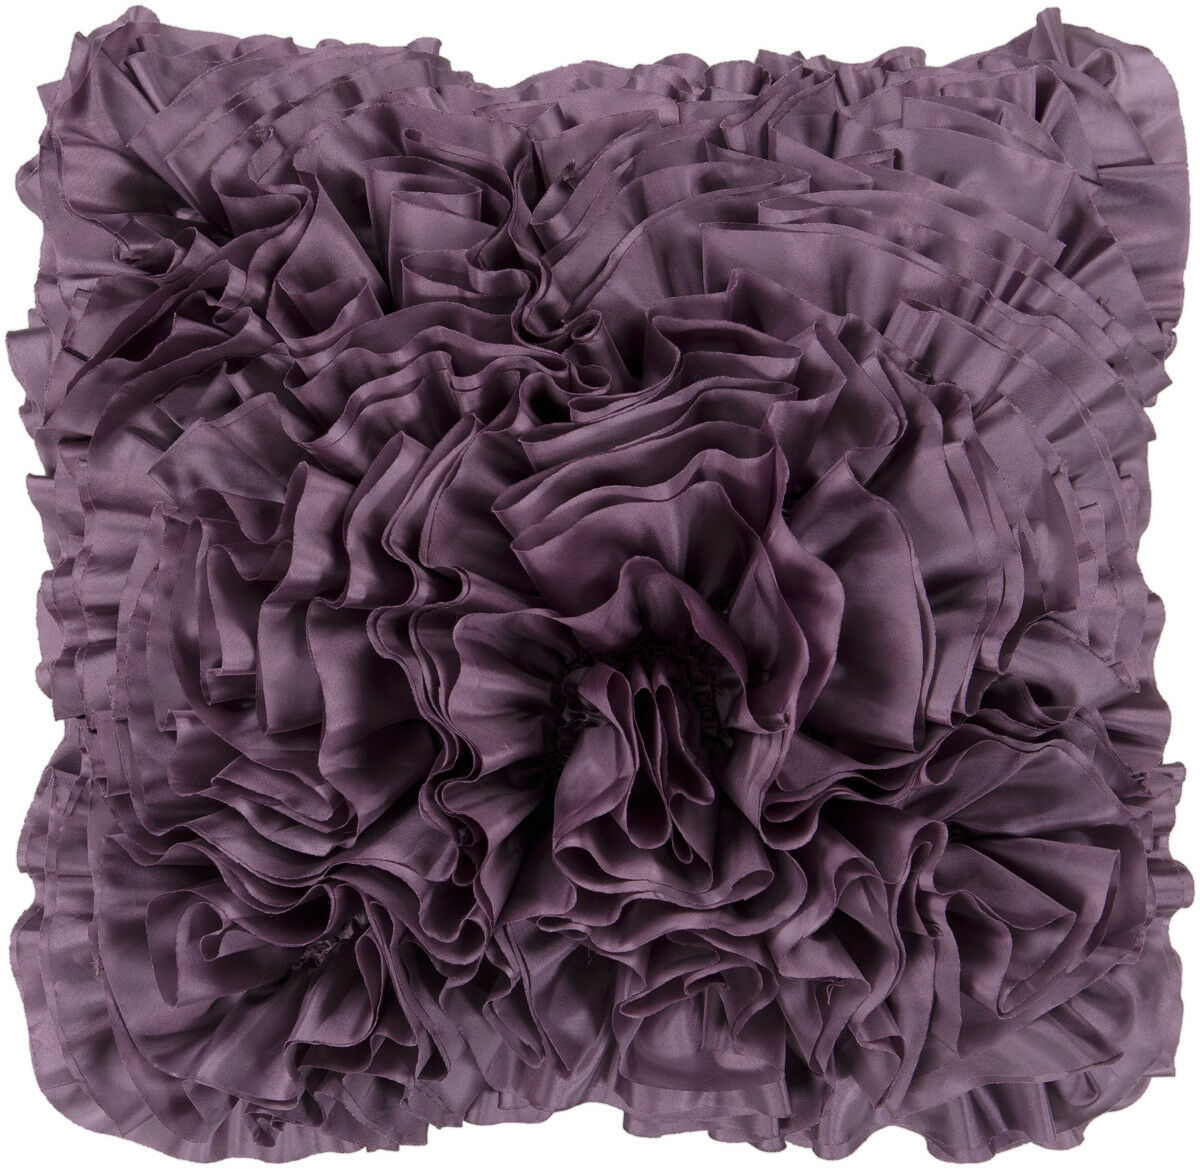 Surya Purples Ruffles Frills Textured Romantic Area Rug Solid BB035